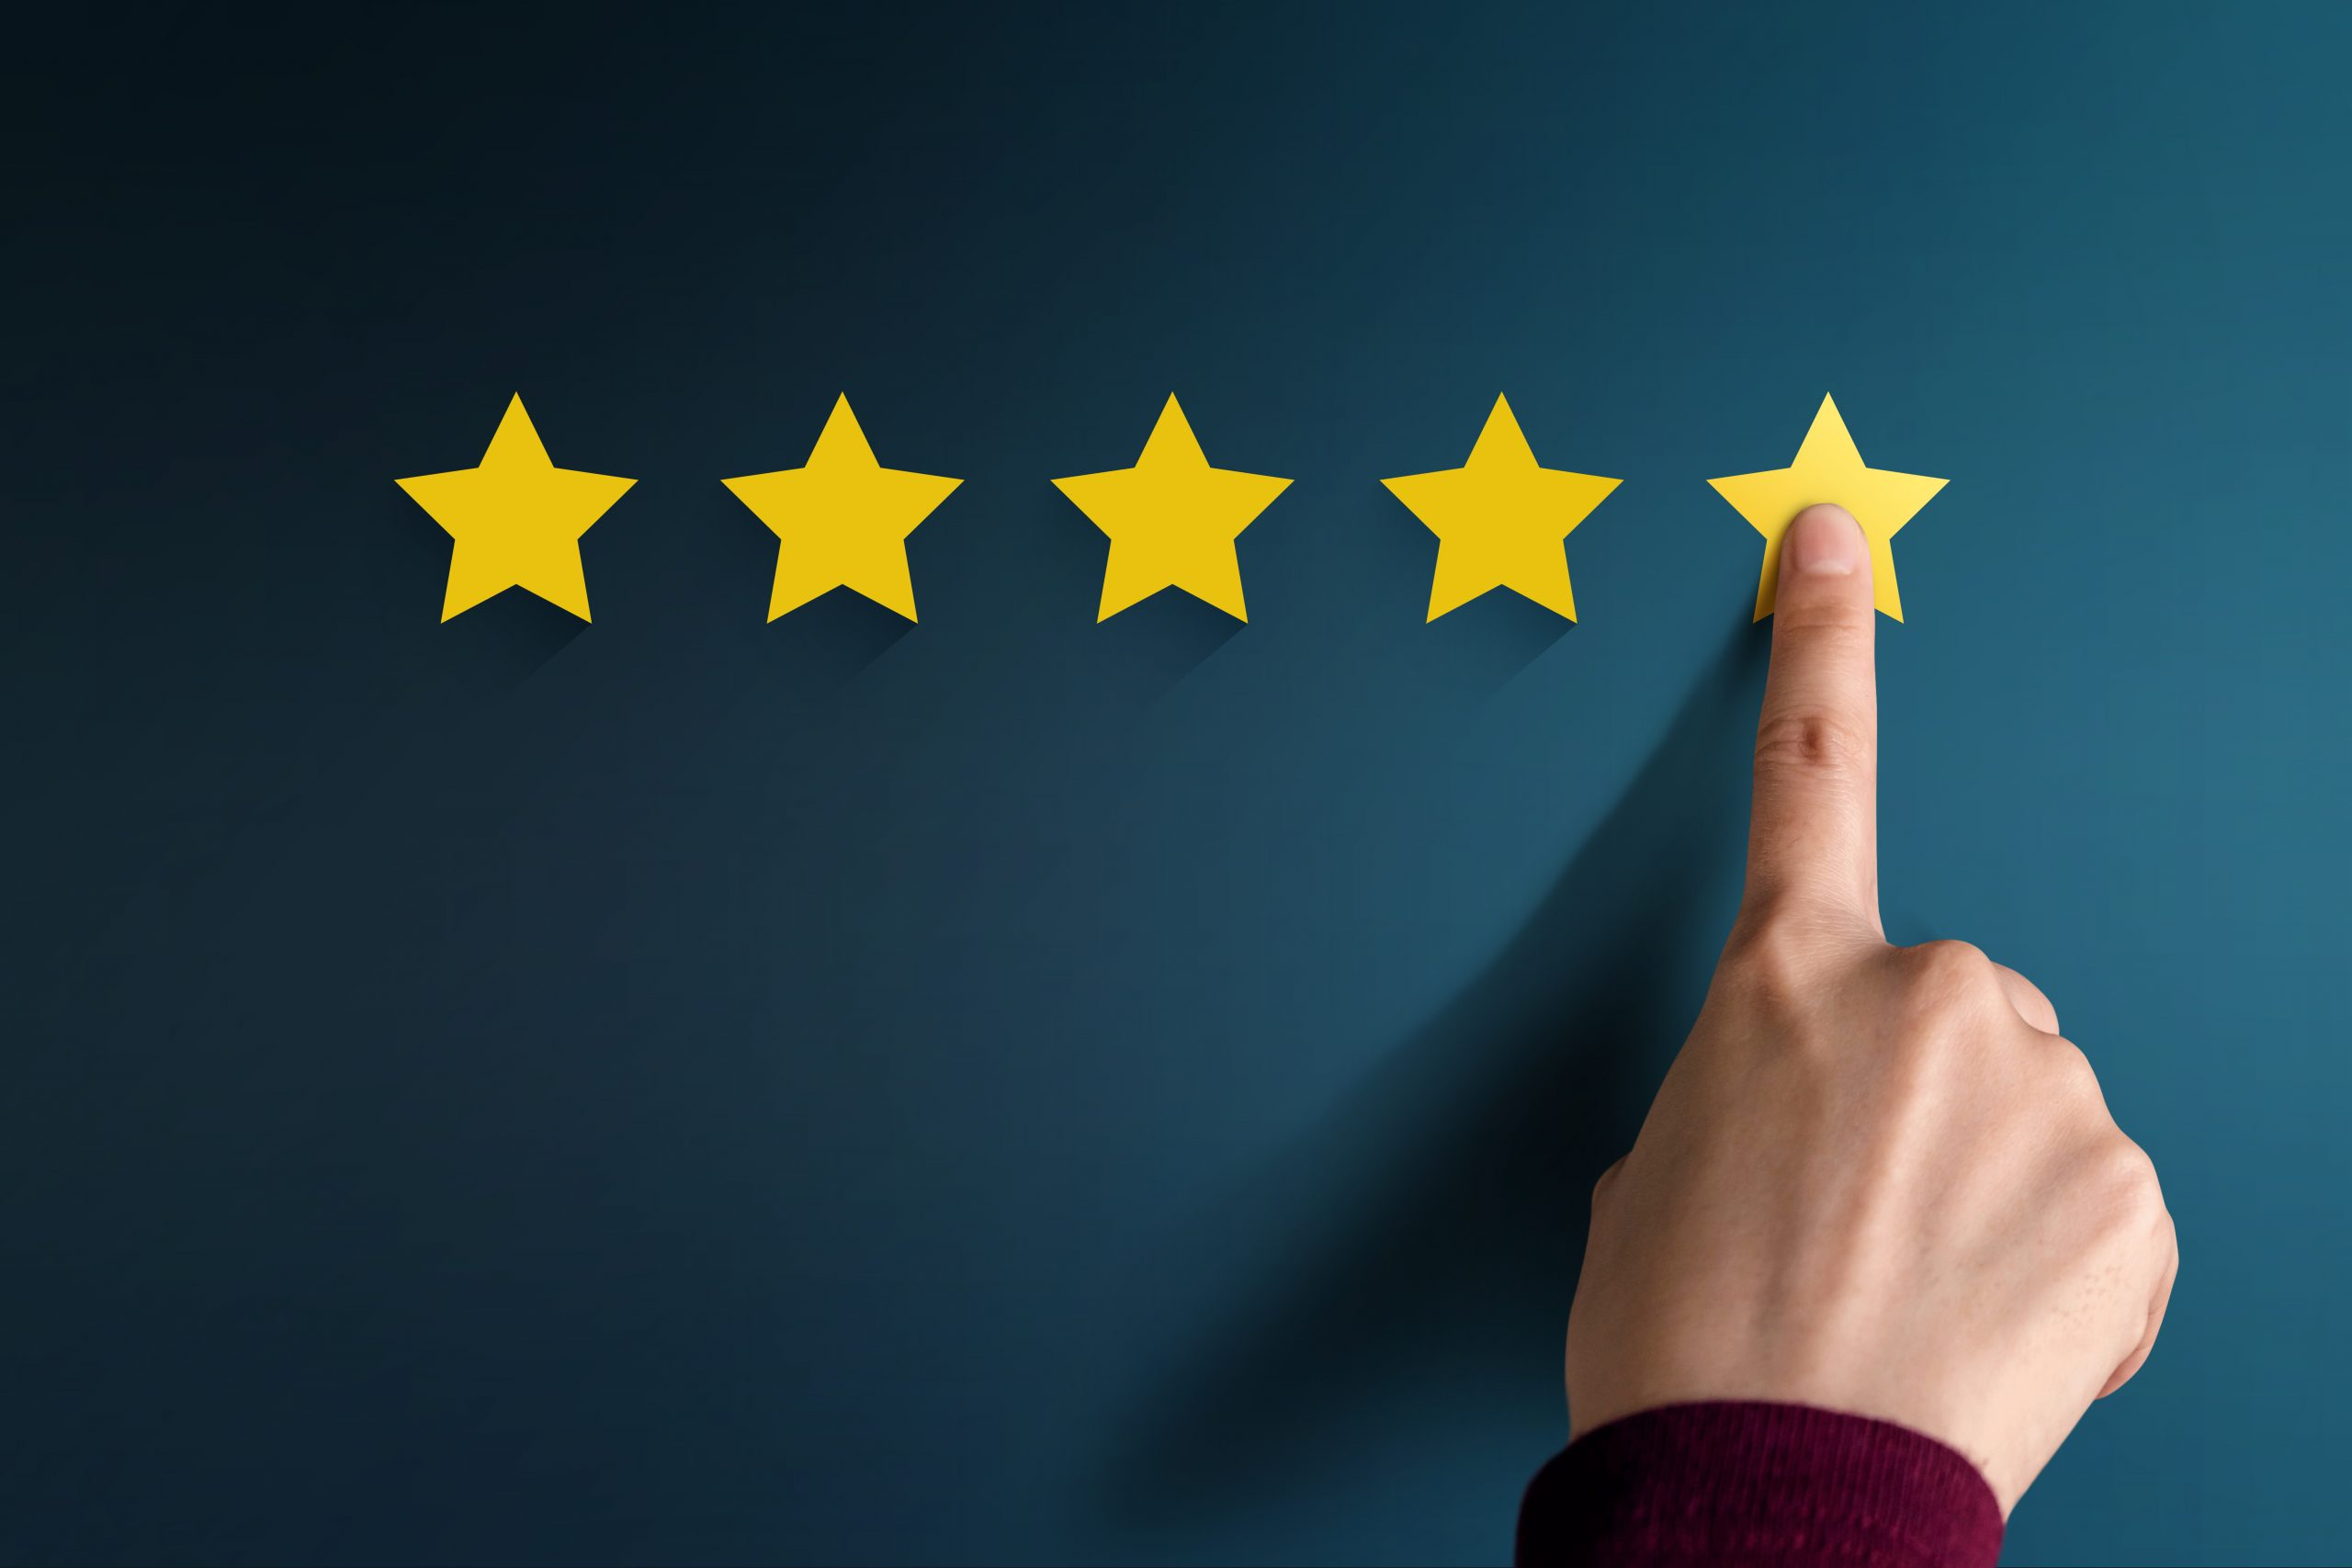 10 Best Review Plugins to Boost Online Revenue